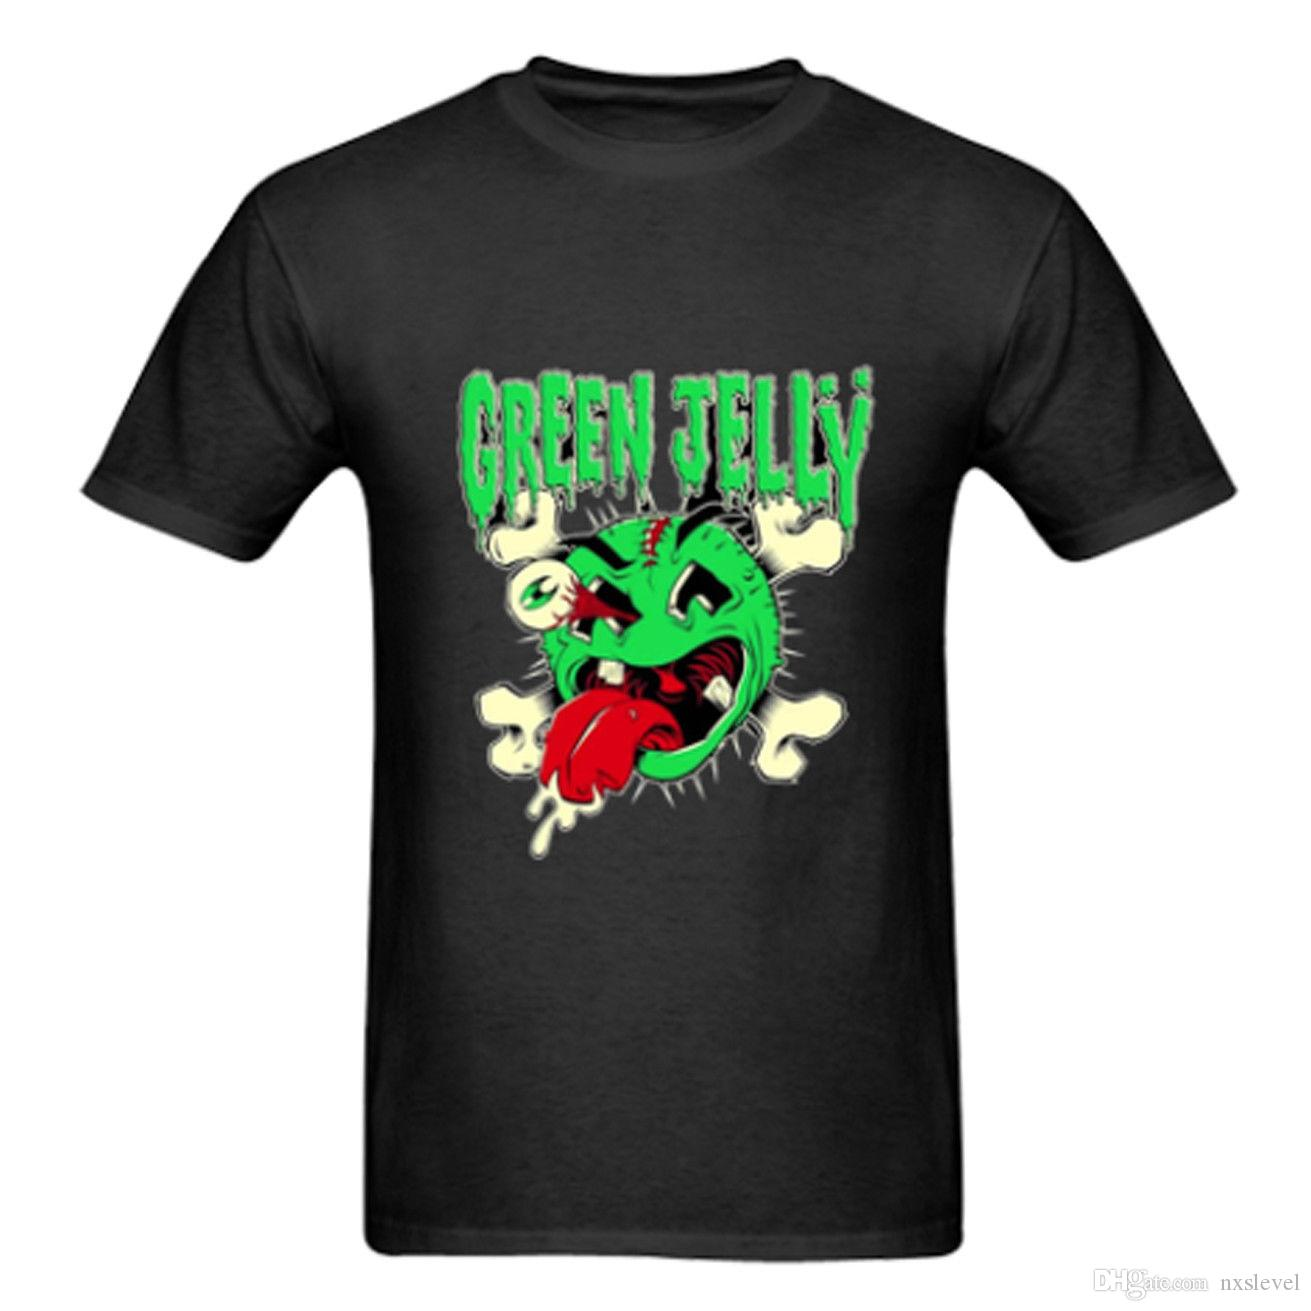 2162cb14 Green Jelly Cereal Killer Tee Tshirt New Men'S T Shirt Size S To 3XL Latest  Designer T Shirts Coolest Tees From Nxslevel, $10.21| DHgate.Com